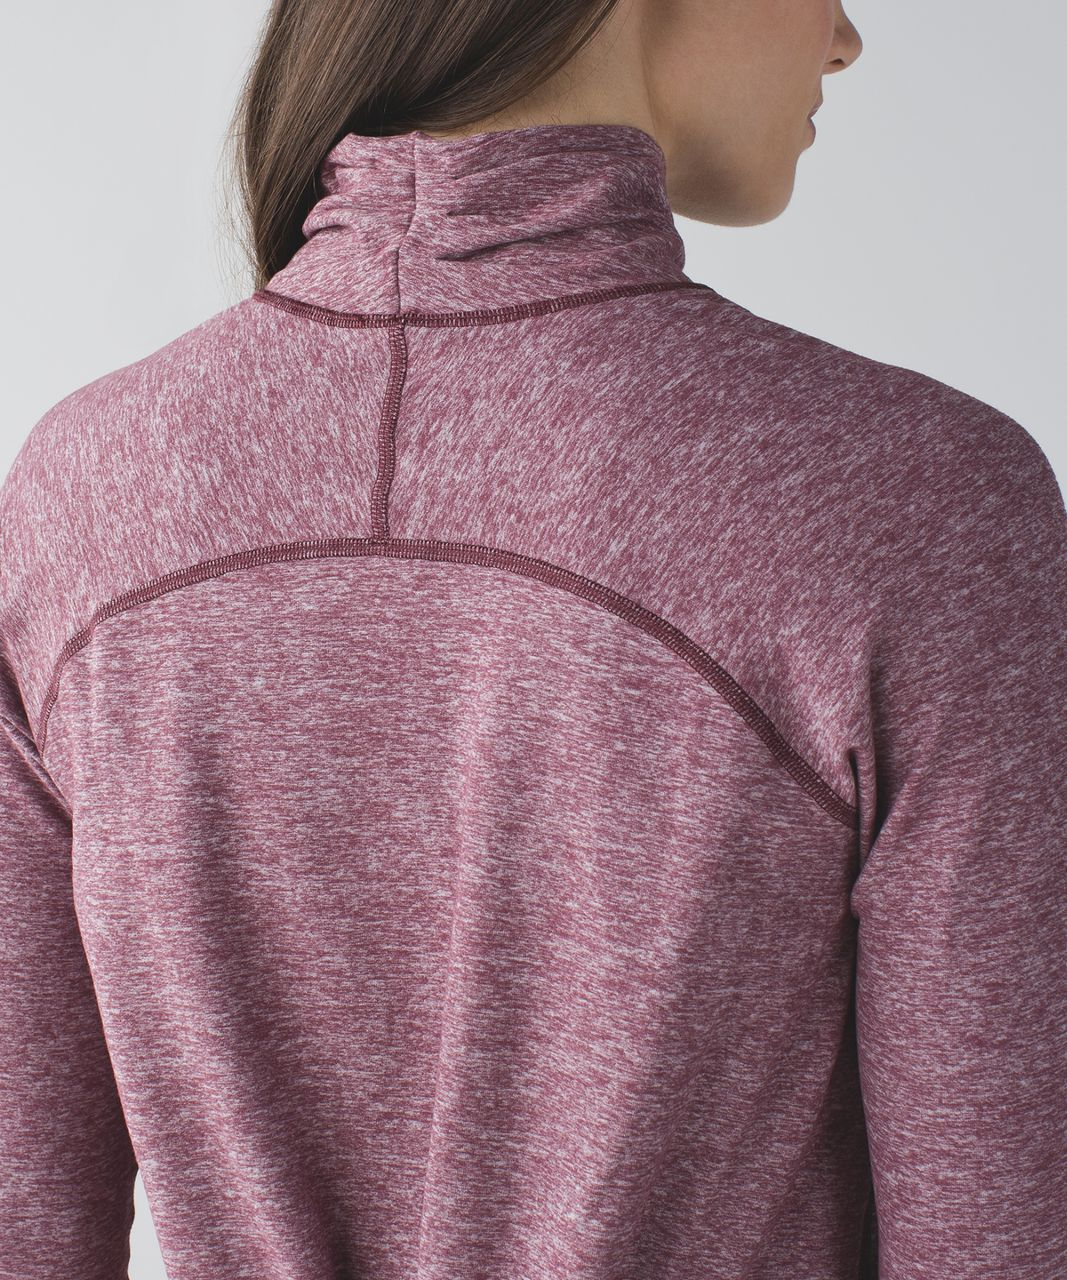 Lululemon Warm Your Core Long Sleeve Tee - Heathered Bordeaux Drama